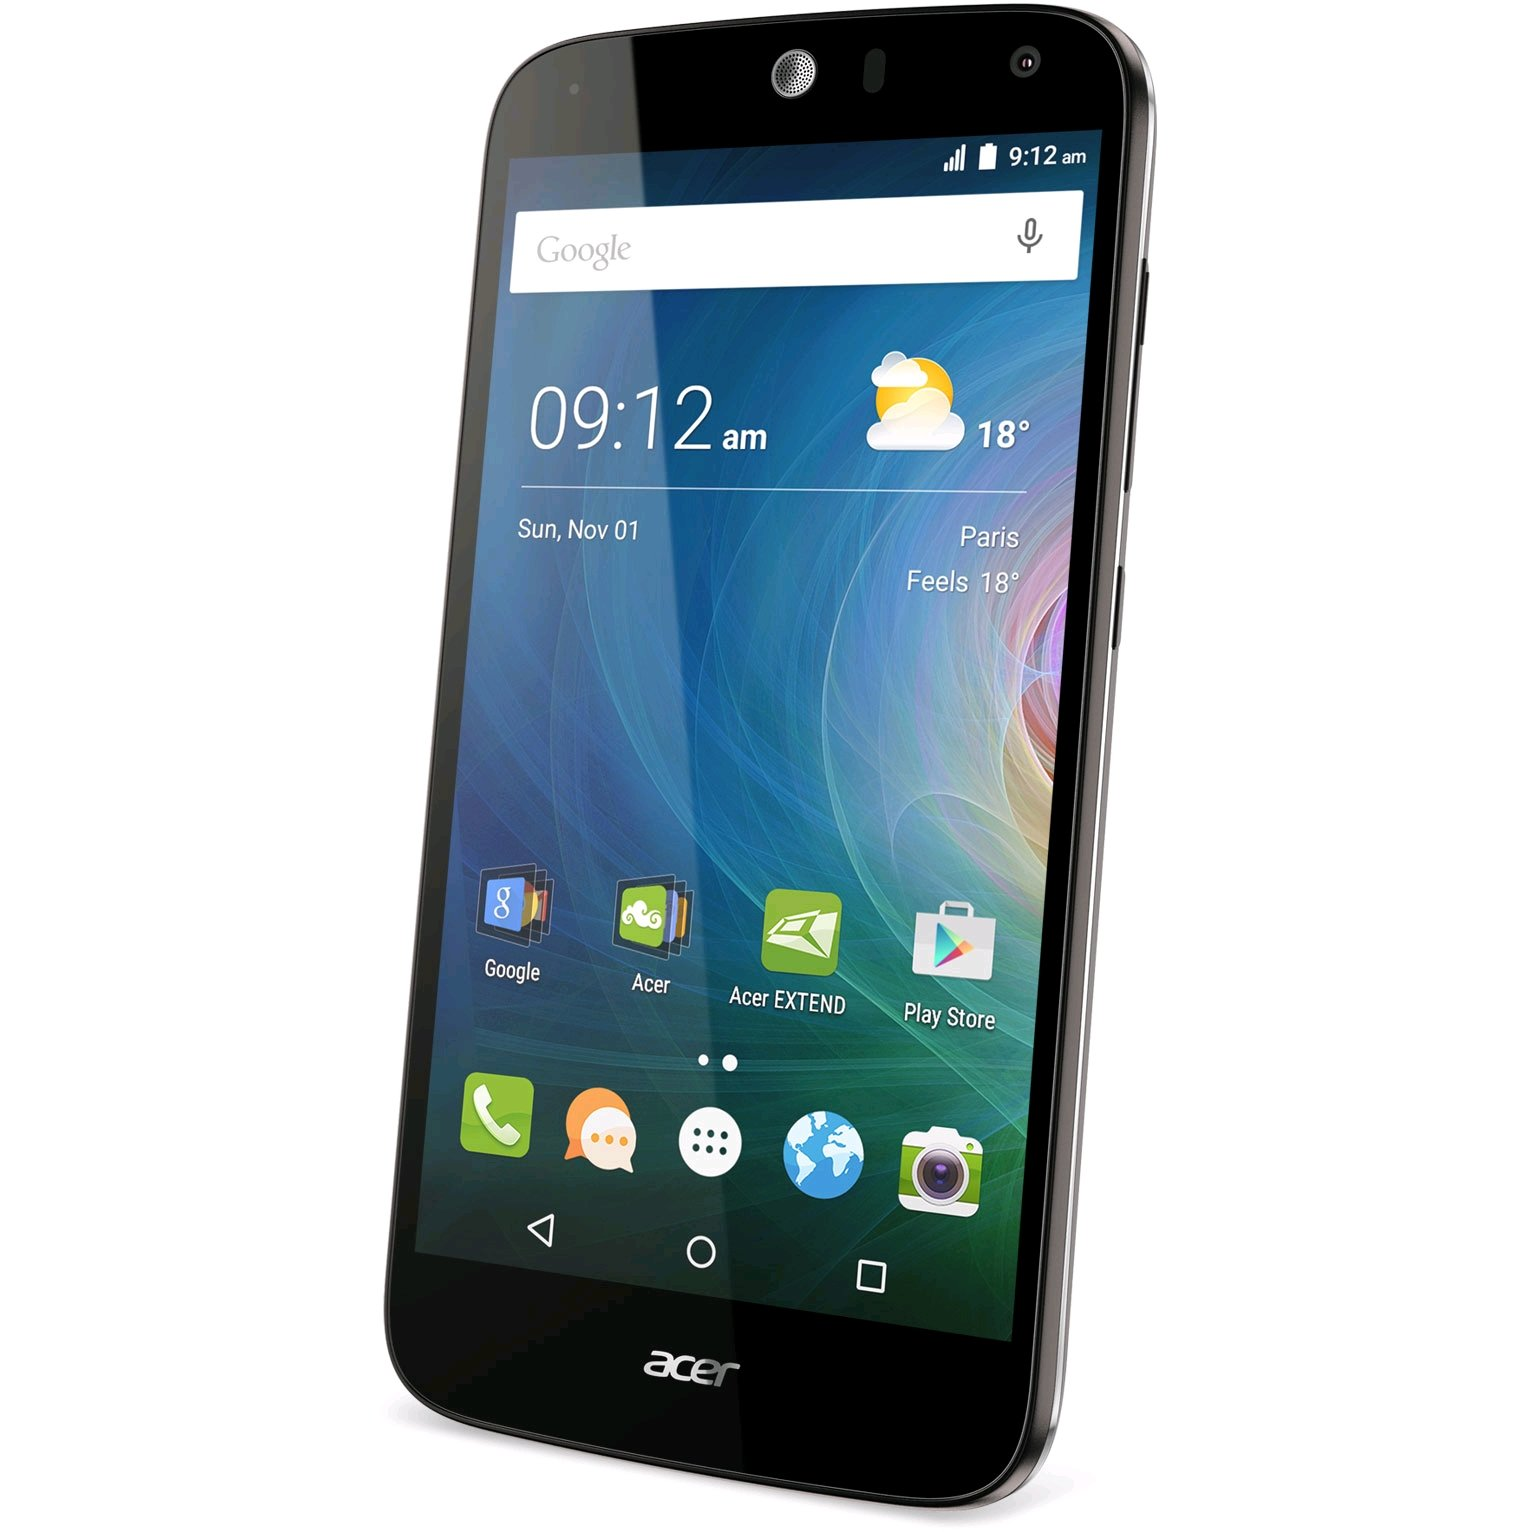 How to Flash Stock Rom on Acer Liquid Z630